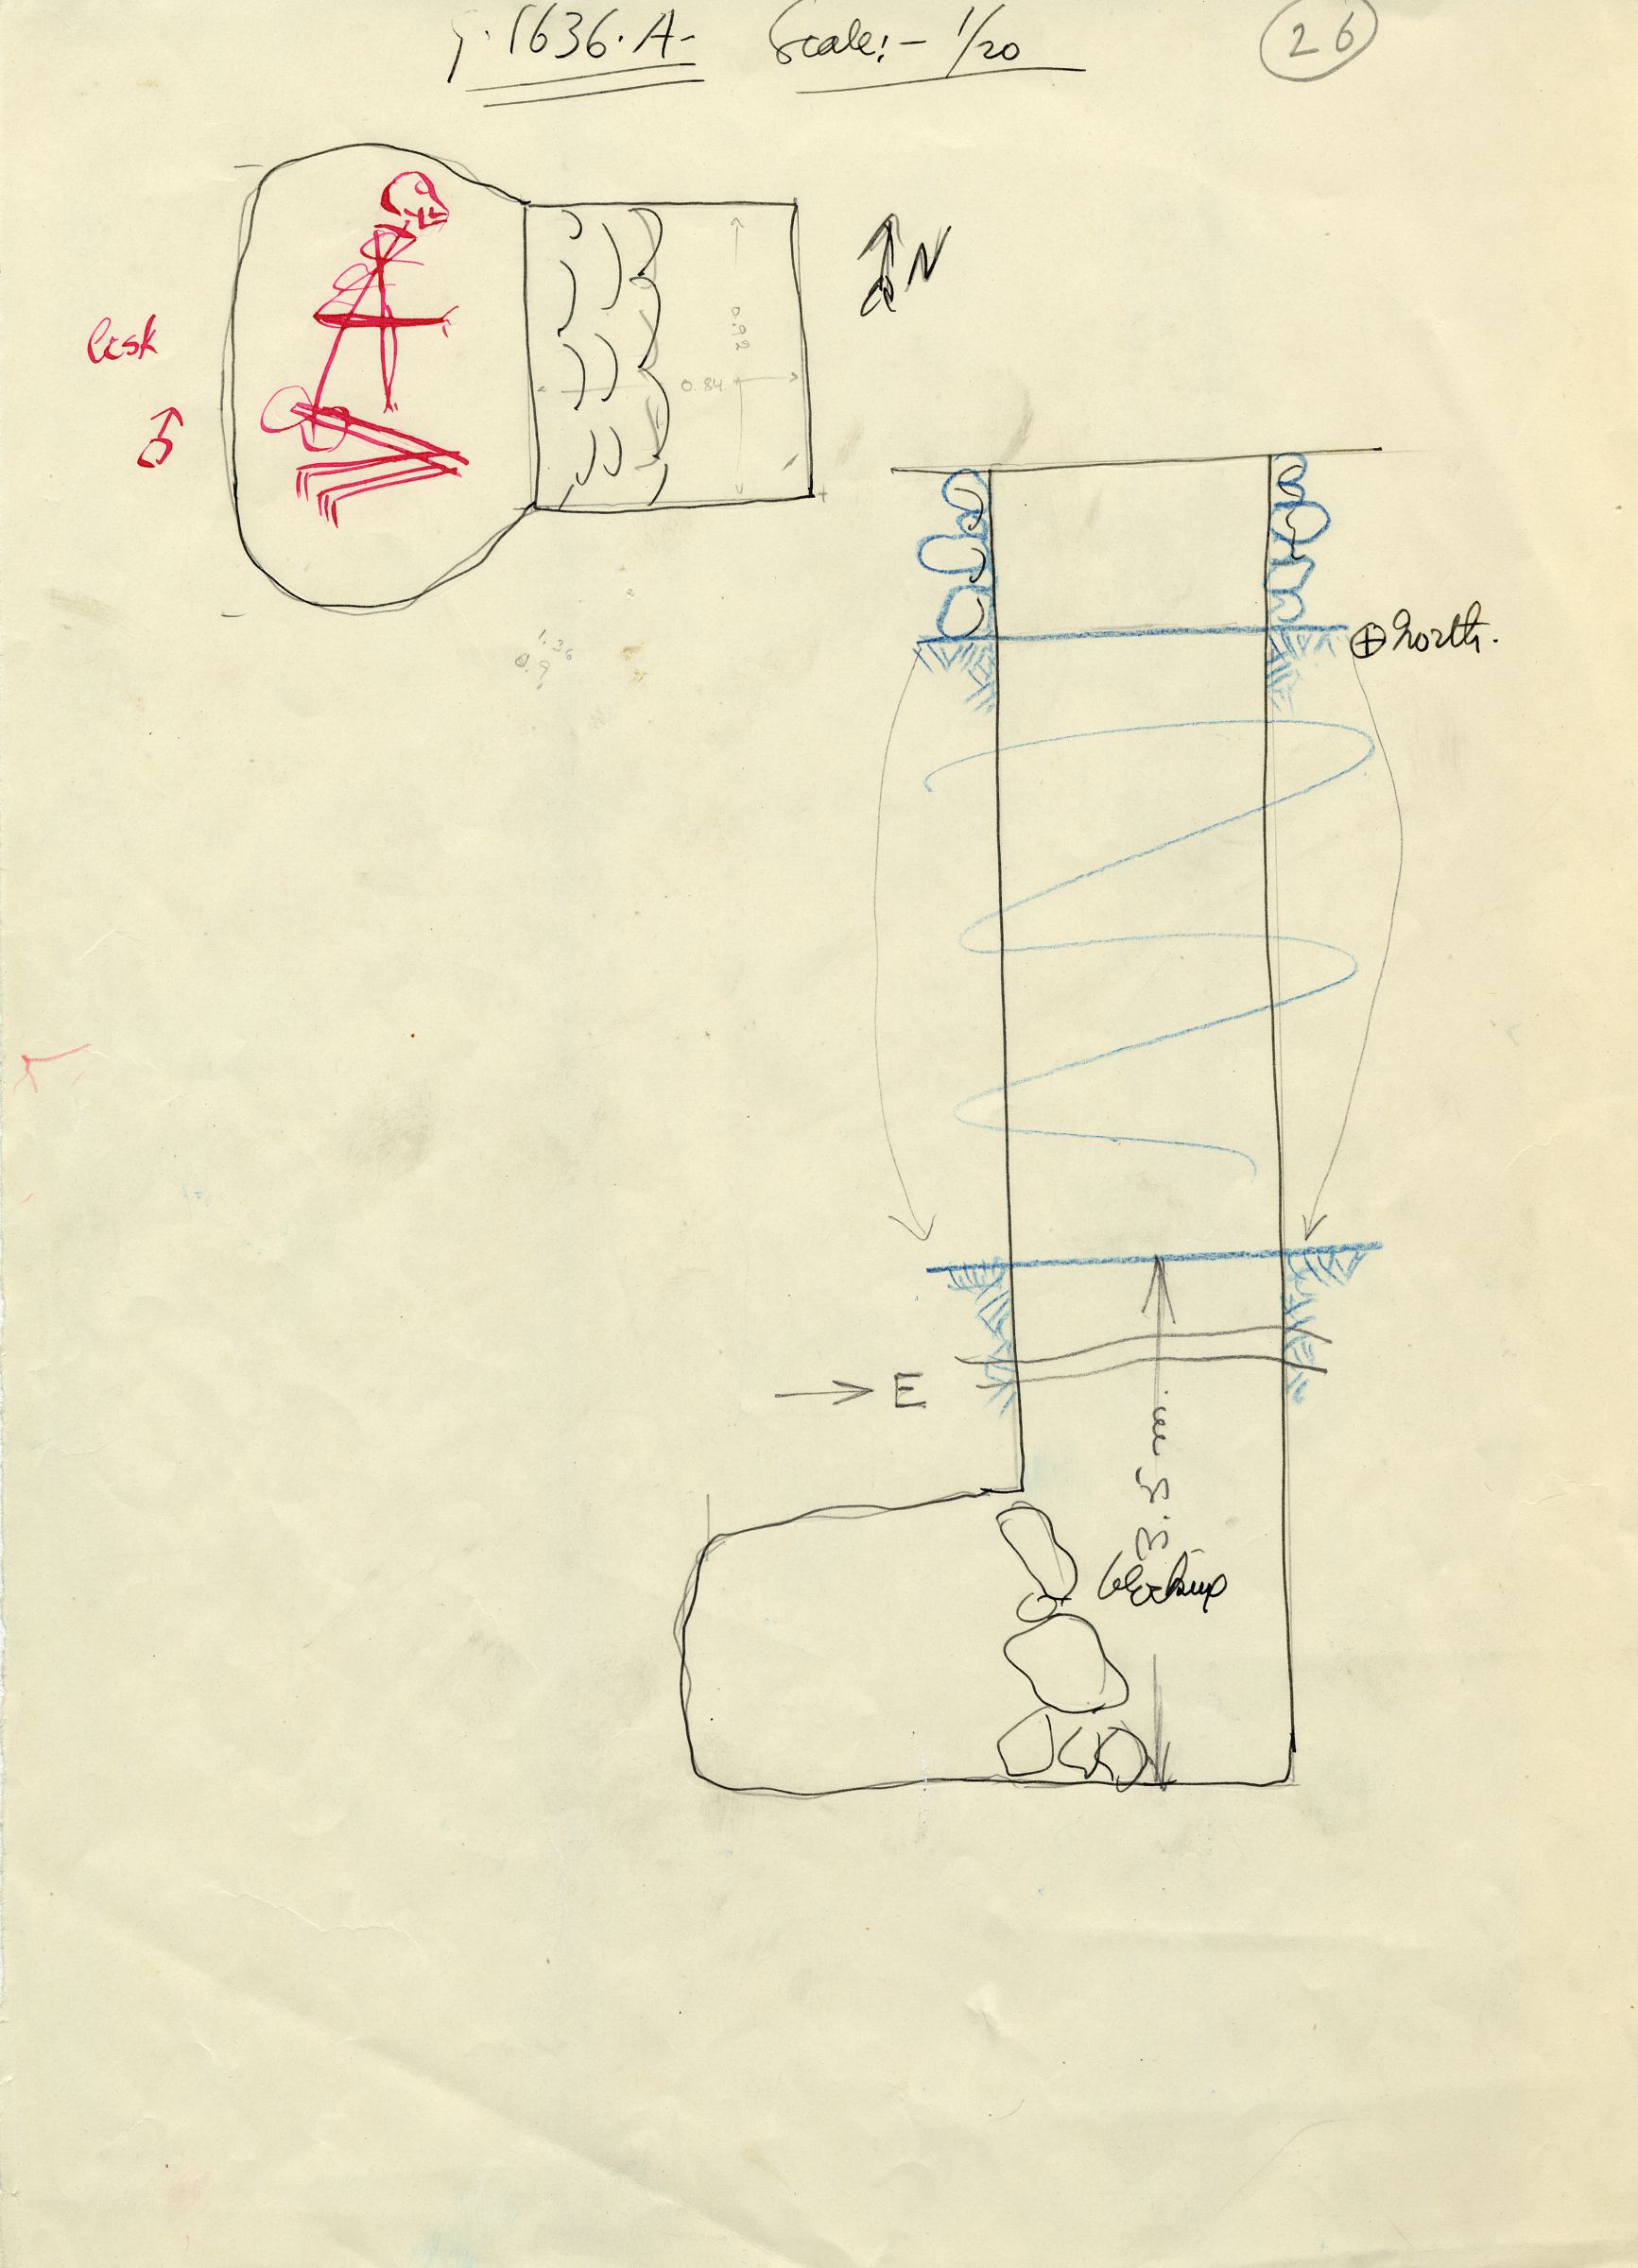 Maps and plans: G 1636, Shaft A